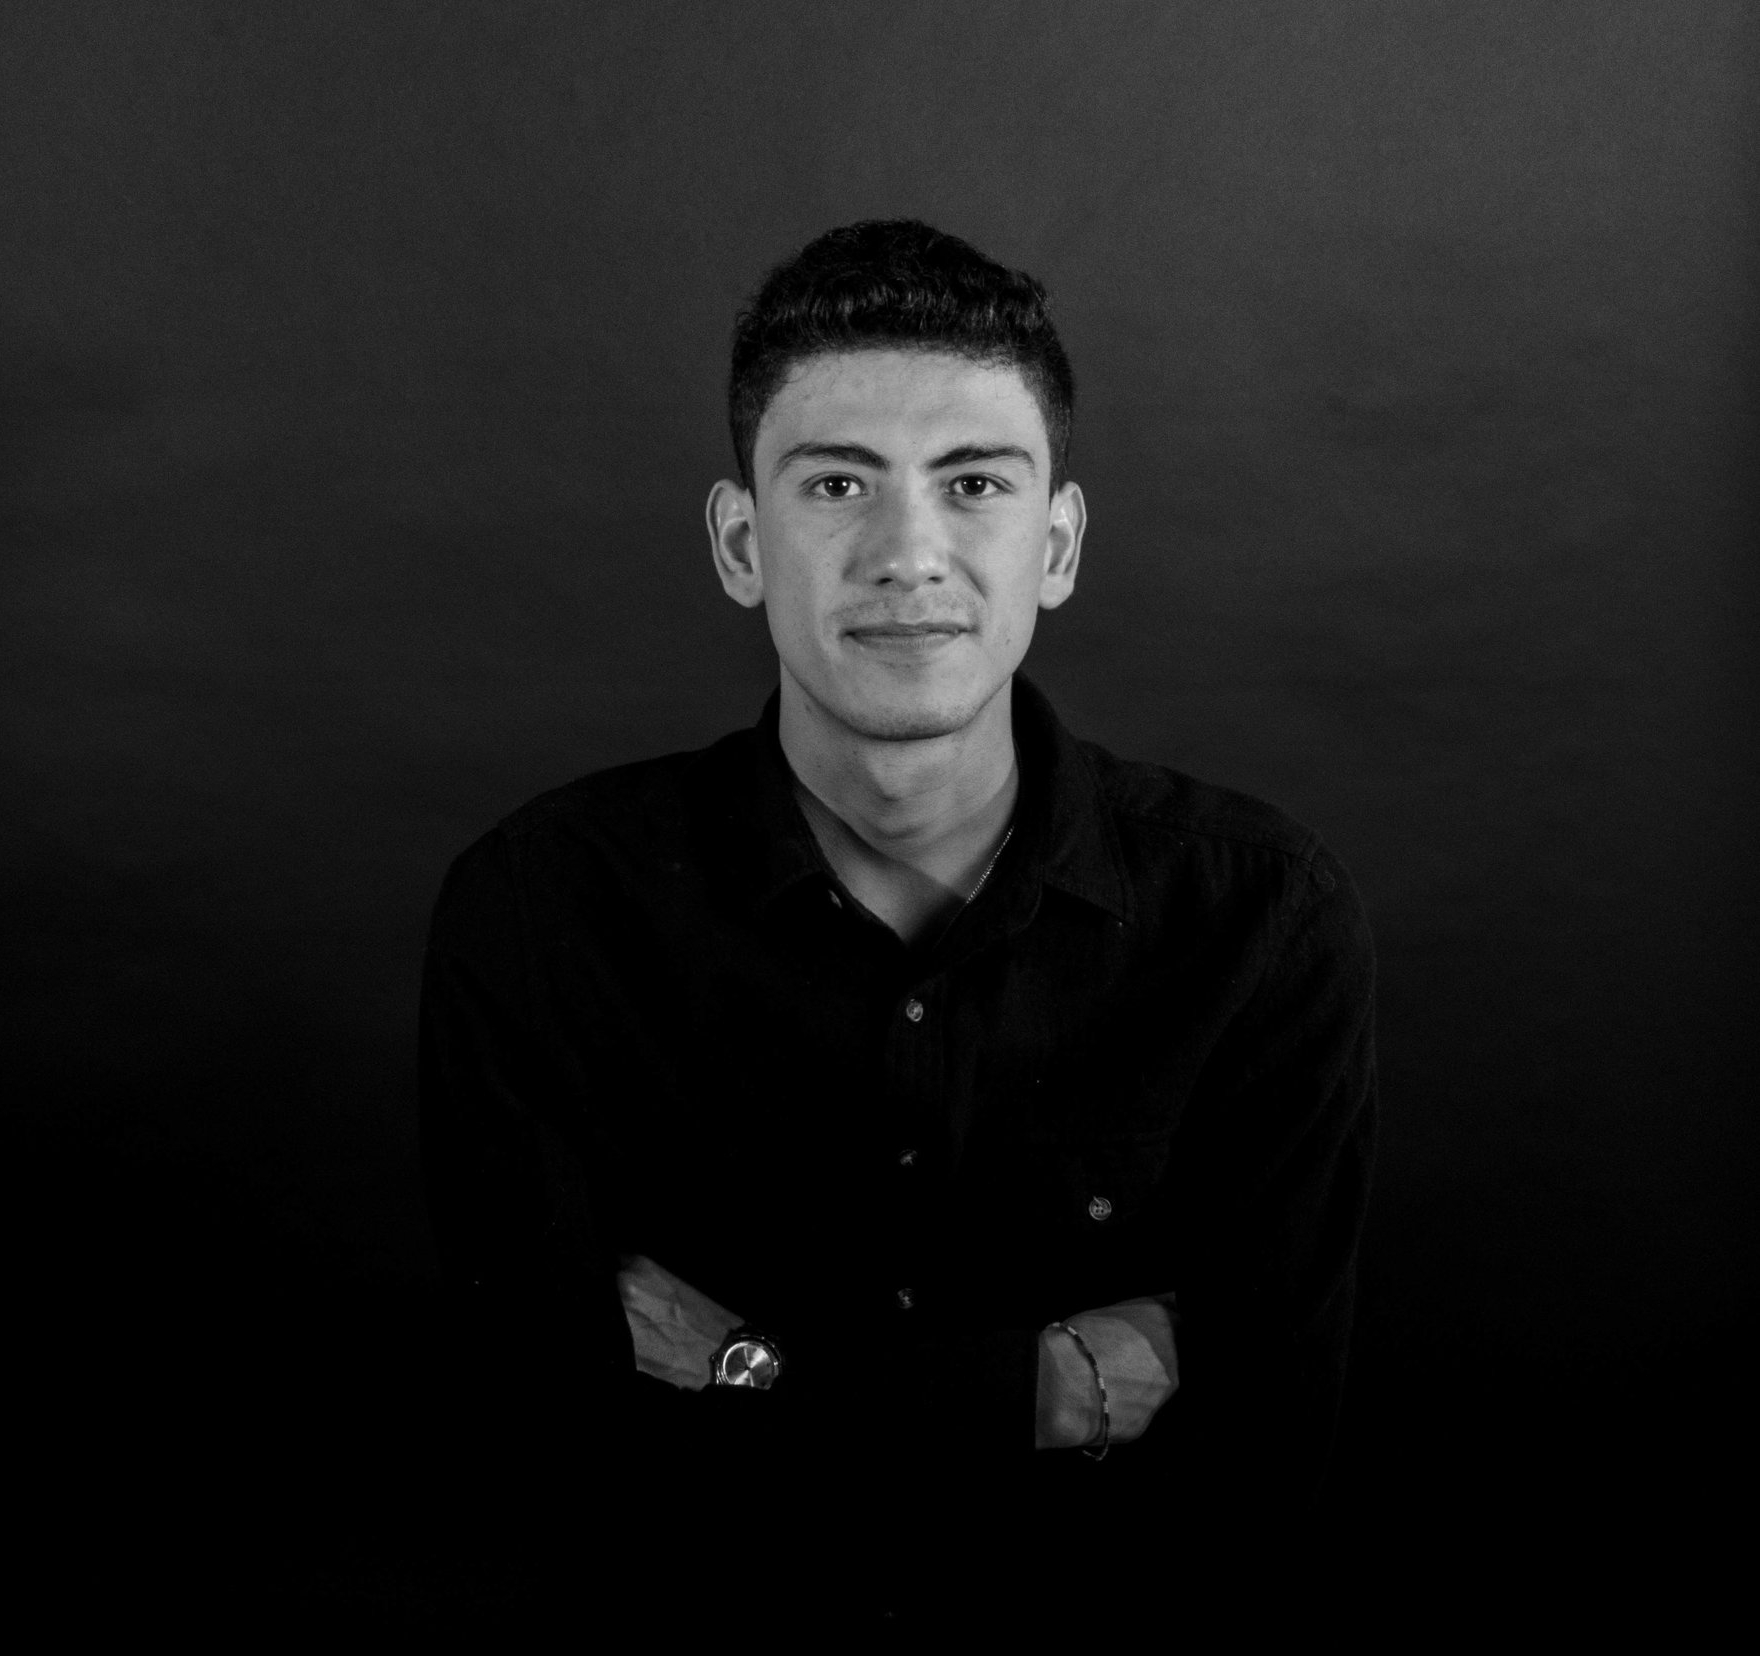 Alejandro Rojas  Fabrication Manager   EXPERIENCE:  Bachelor of Visual Design, Univerisidad Panamericana   PASSIONS:  Photography, astrology, modeling, travel, foreign languages   HOMETOWN:   Bogota, Colombia